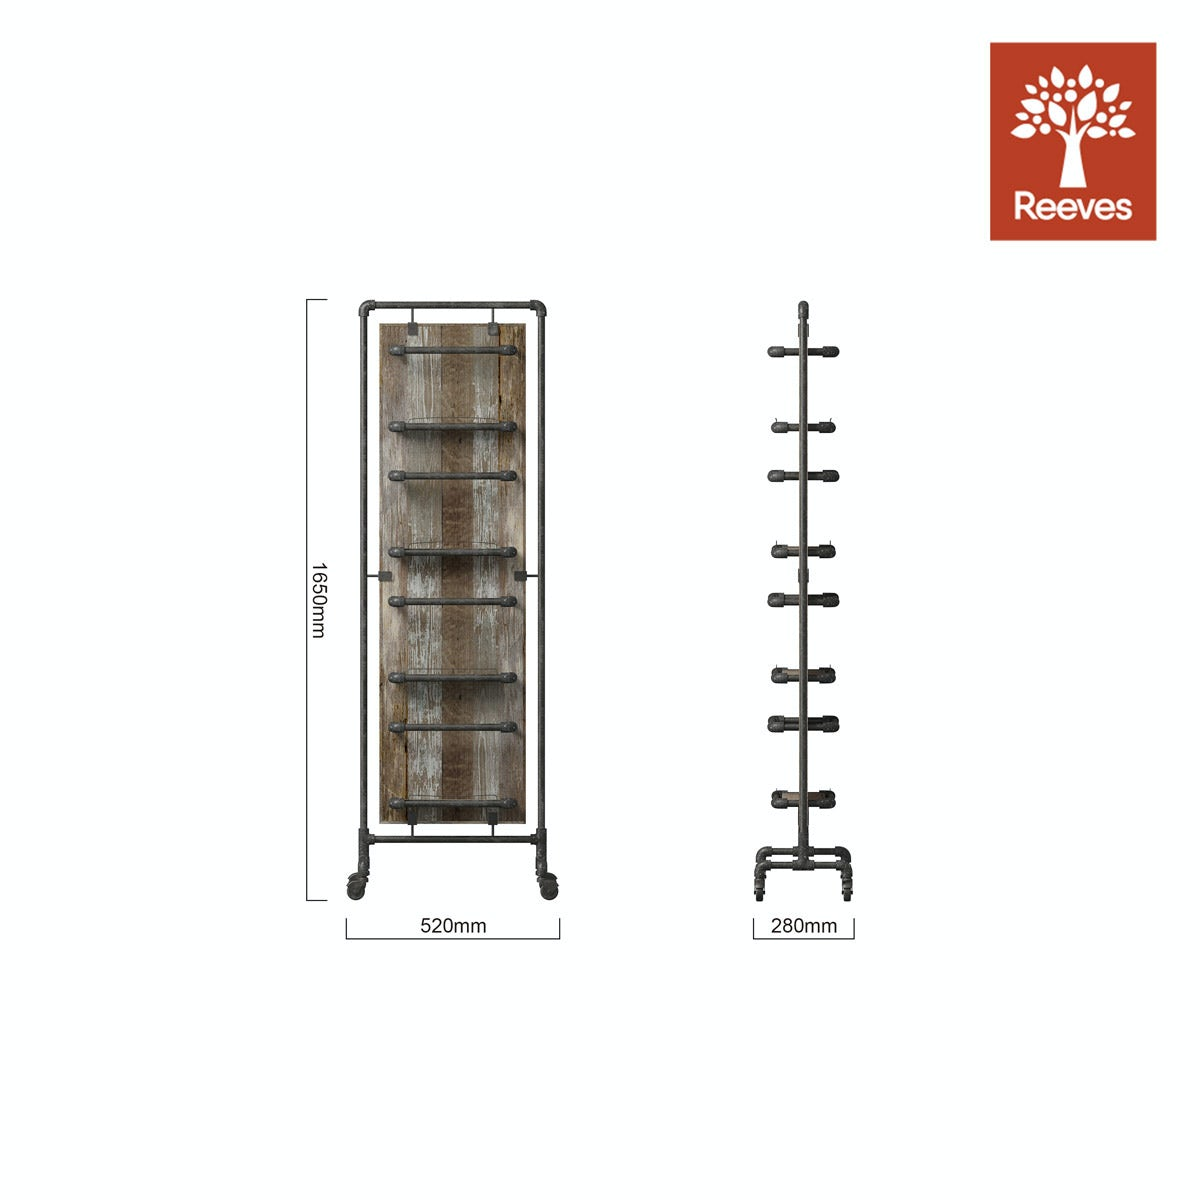 Dimensions for Reeves Sawyer tall storage rack